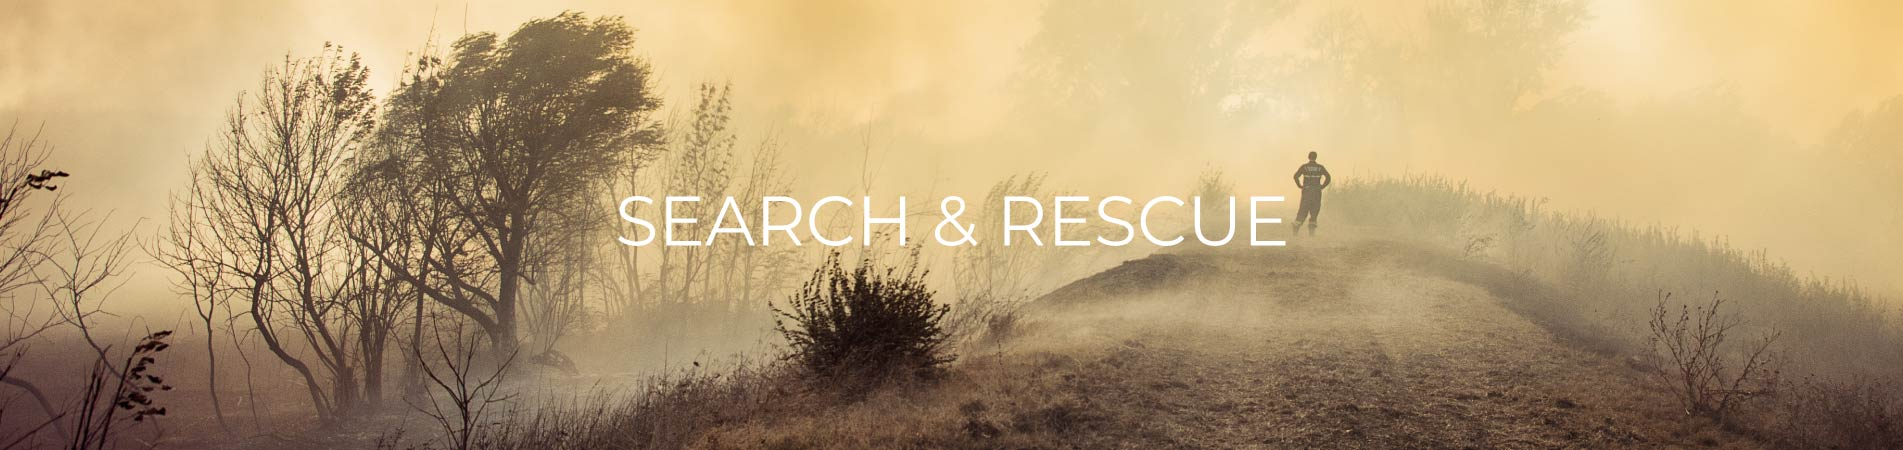 search-rescue-banner.jpg